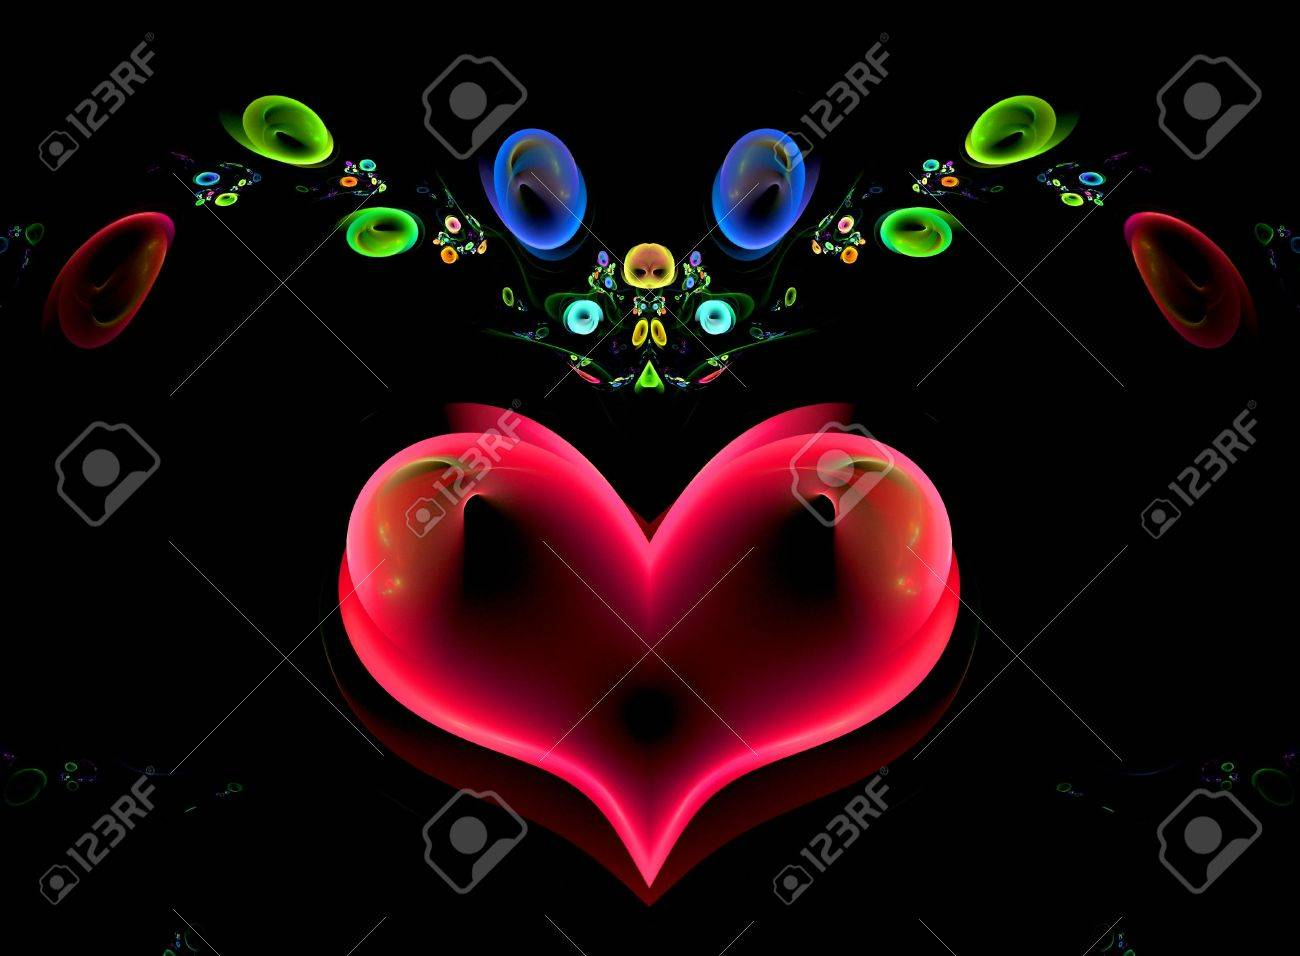 To the holiday of Sainted Valentine. Heart. Stock Photo - 6112319